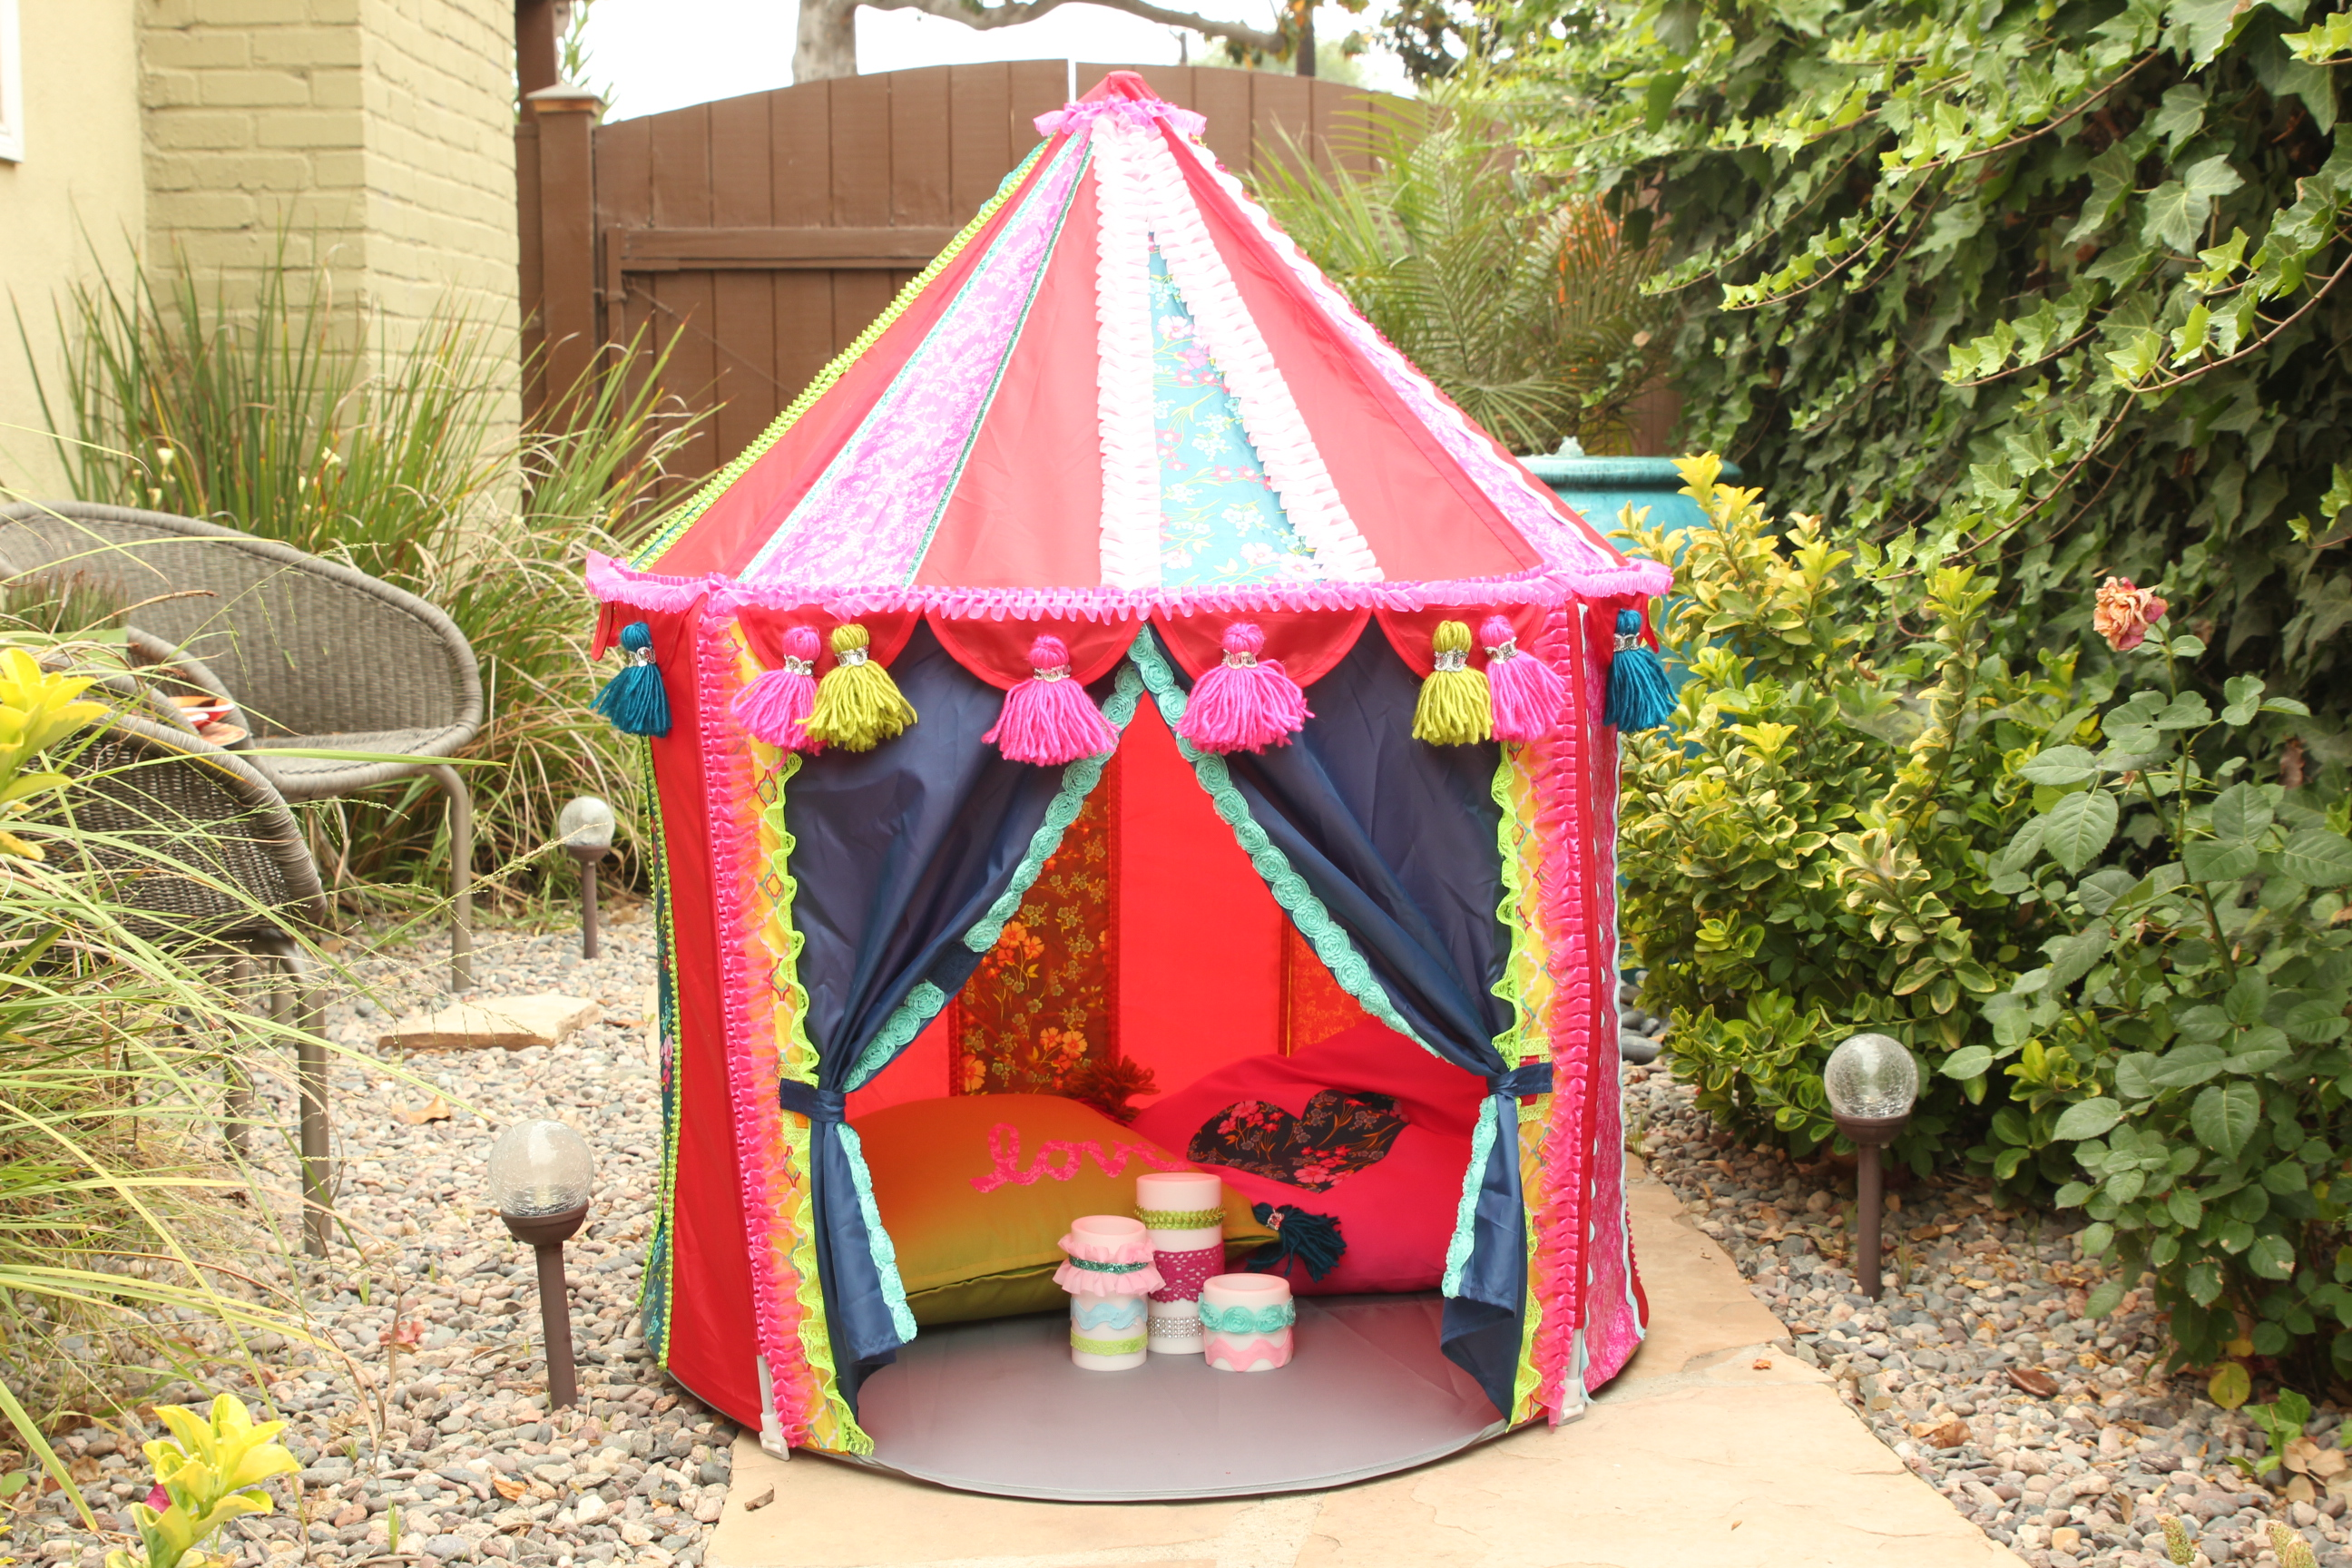 The tent is great for outdoor and indoor play. It is also collapsable for storage. & Ikea Hack! Make a Boho Play Tent from the CIRKUSTÄLT Tent - Cathie ...